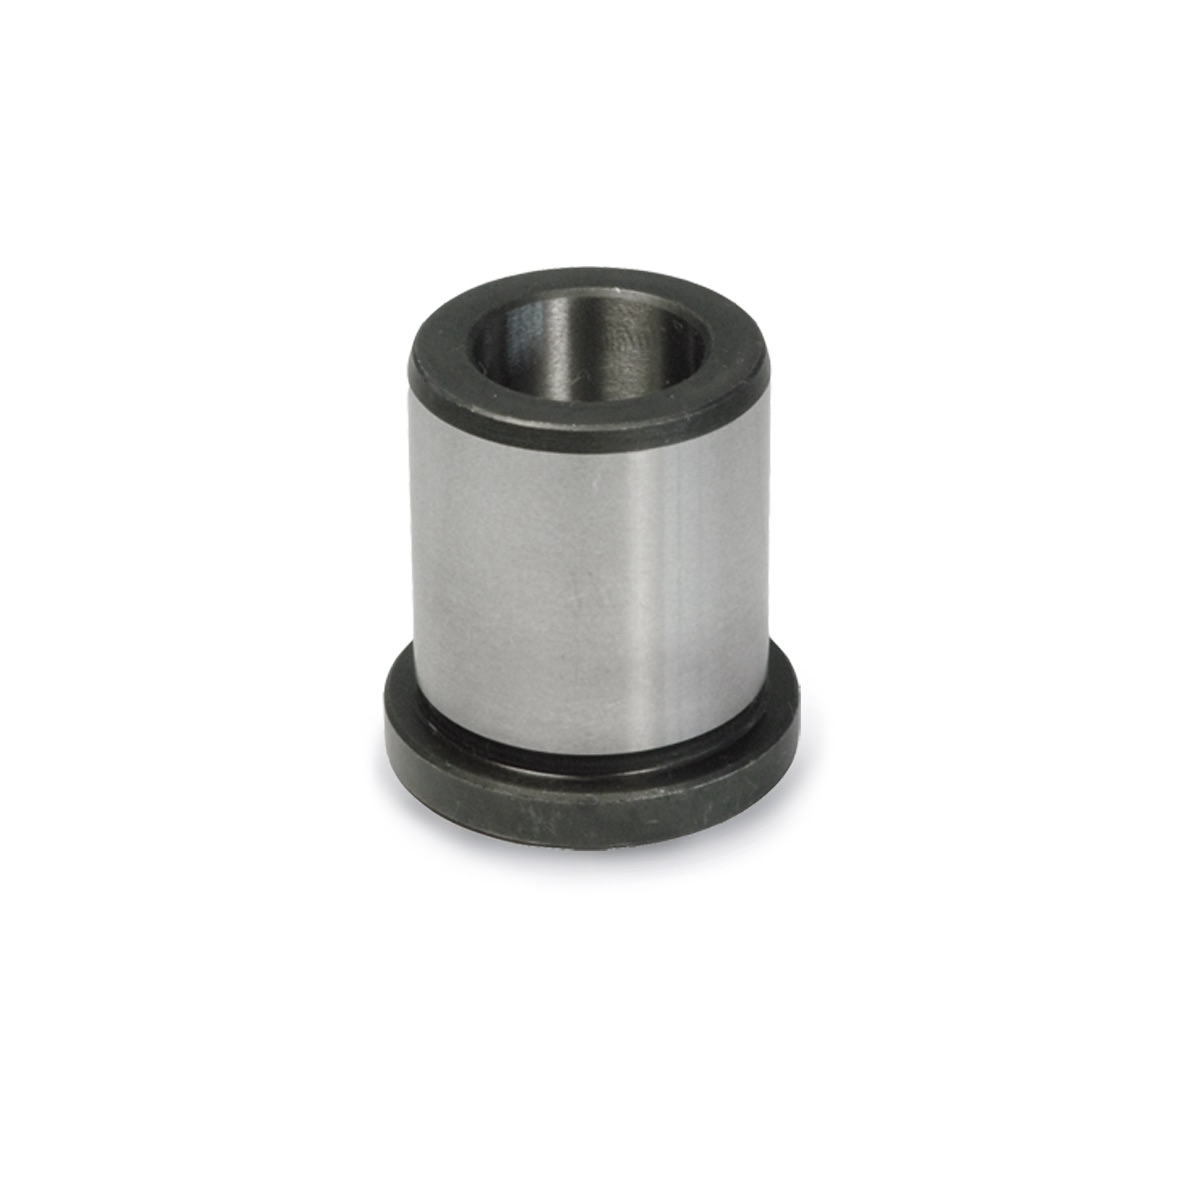 Headed Drill Bushes DIN 172A, Steel, Hardened